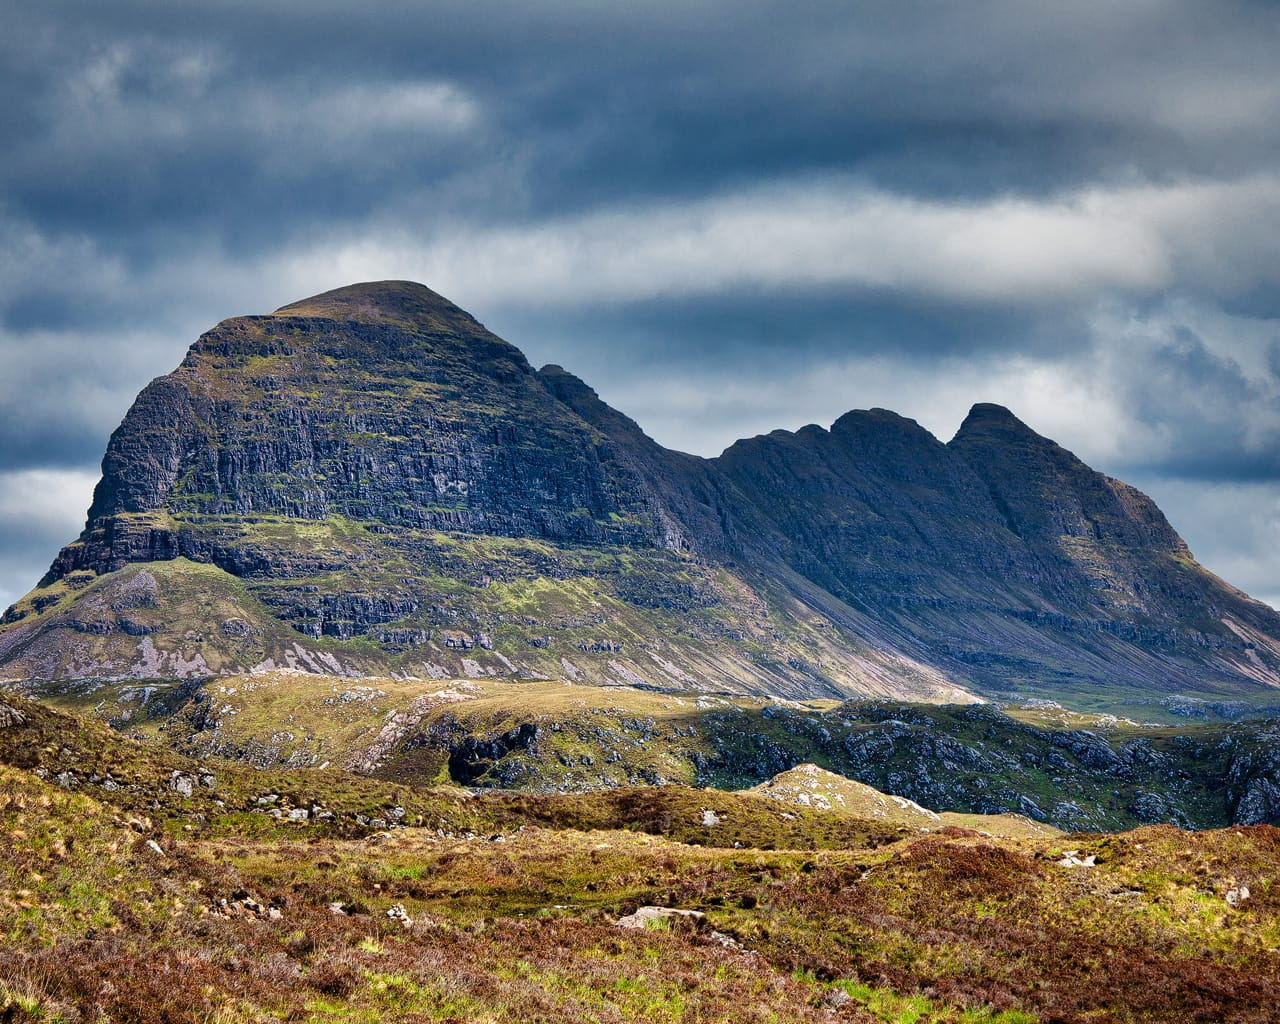 Suilven, a mountain in the Assynt area of the Northwest Highlands of Scotland, is around 3 billion years old. Photo by Paul Hermans, licensed CC-by-SA-3.0